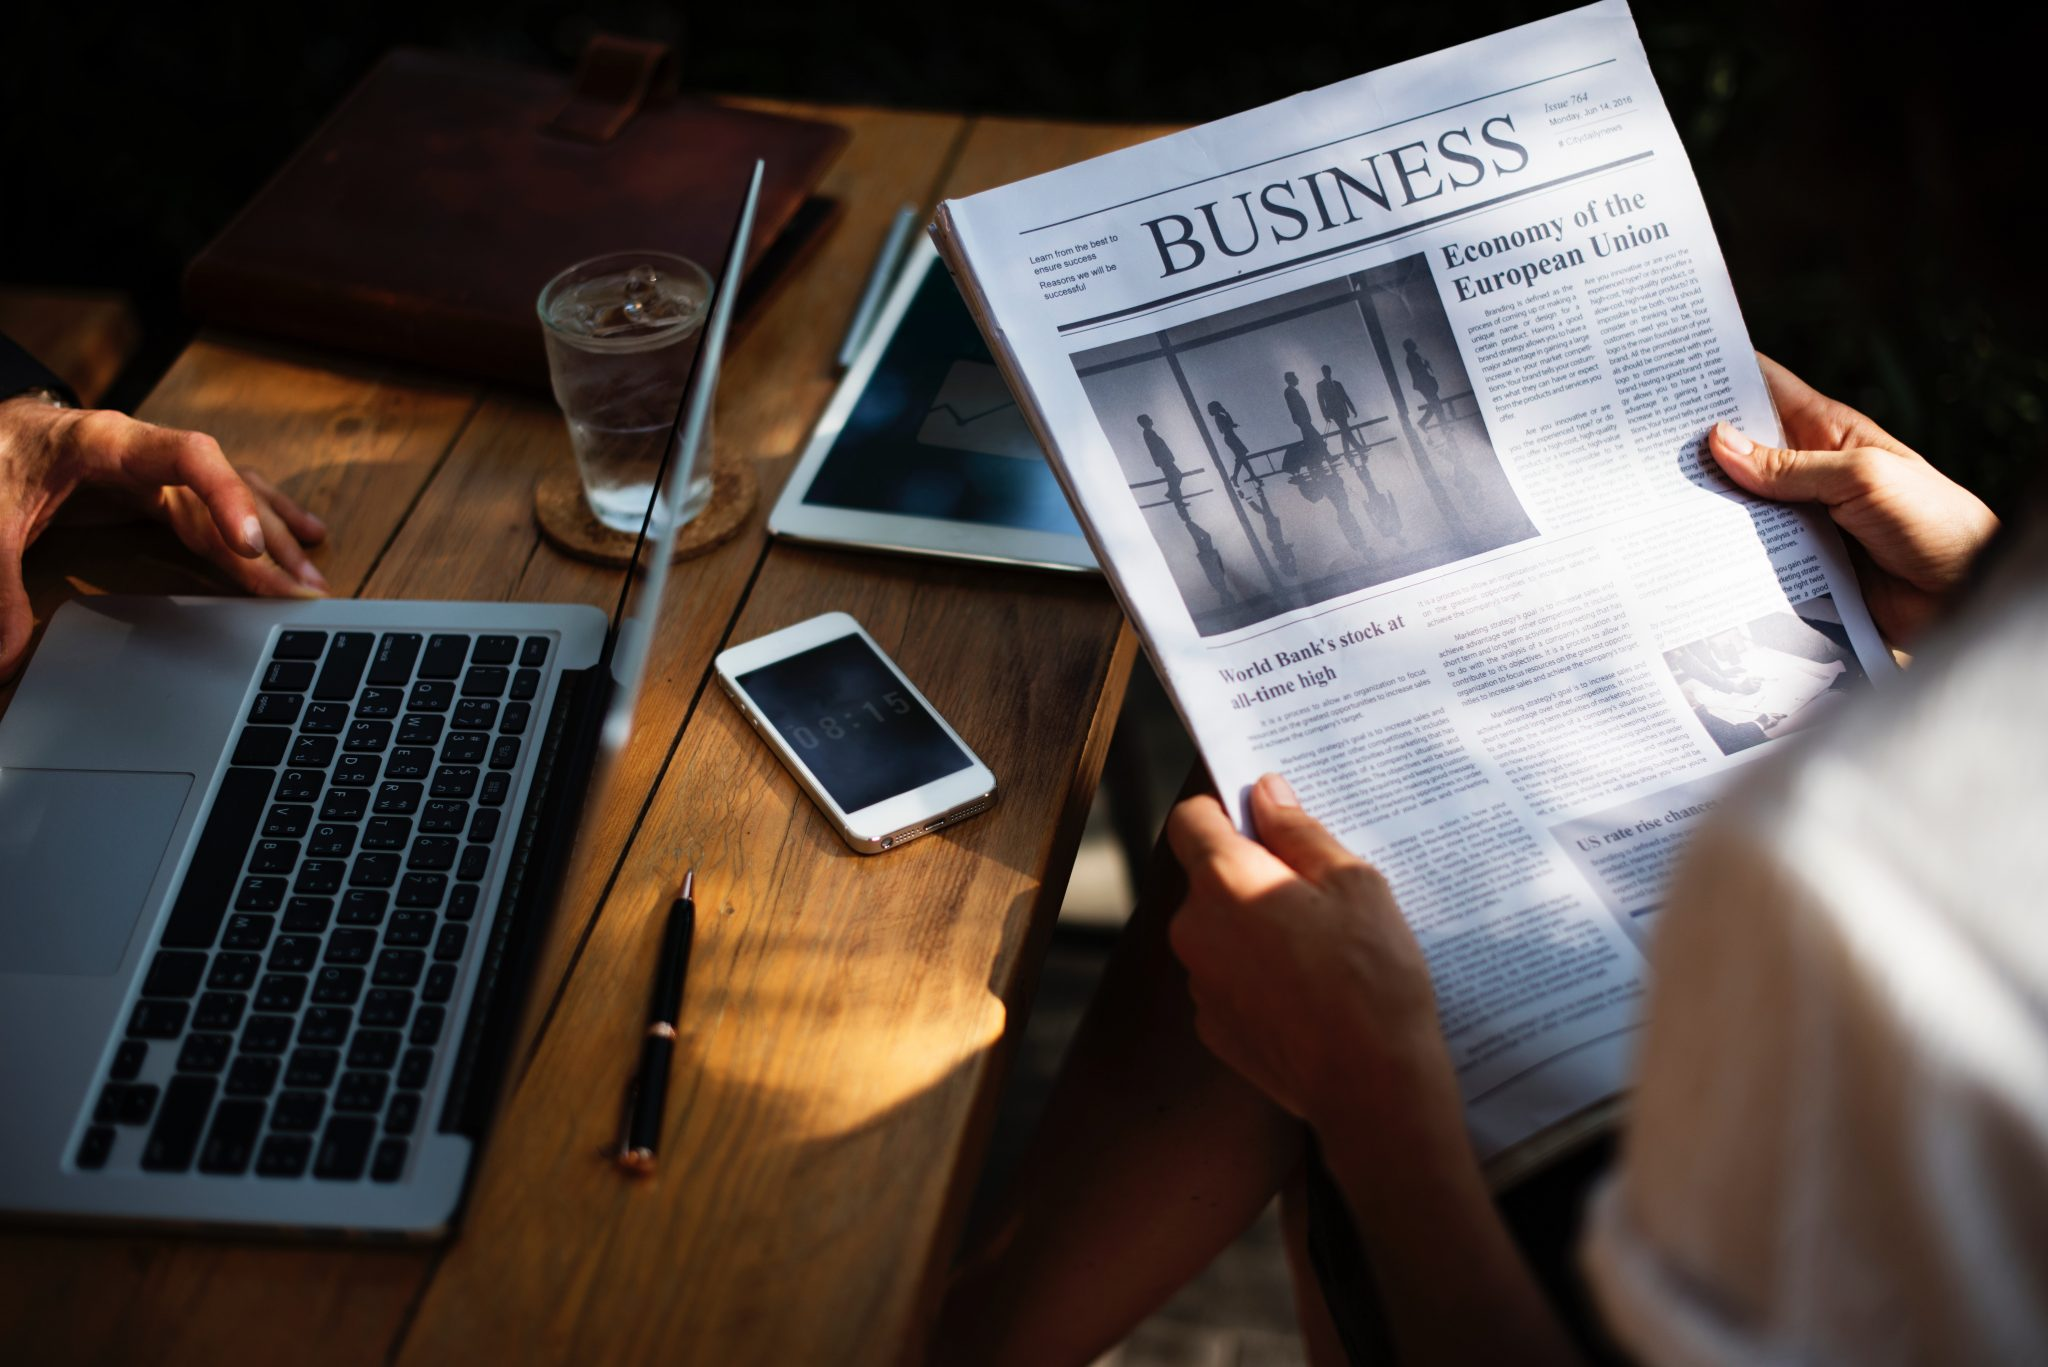 One person reads the business newspaper while another uses a laptop - Baldwin Financial Services - Seaton Financial Advisers